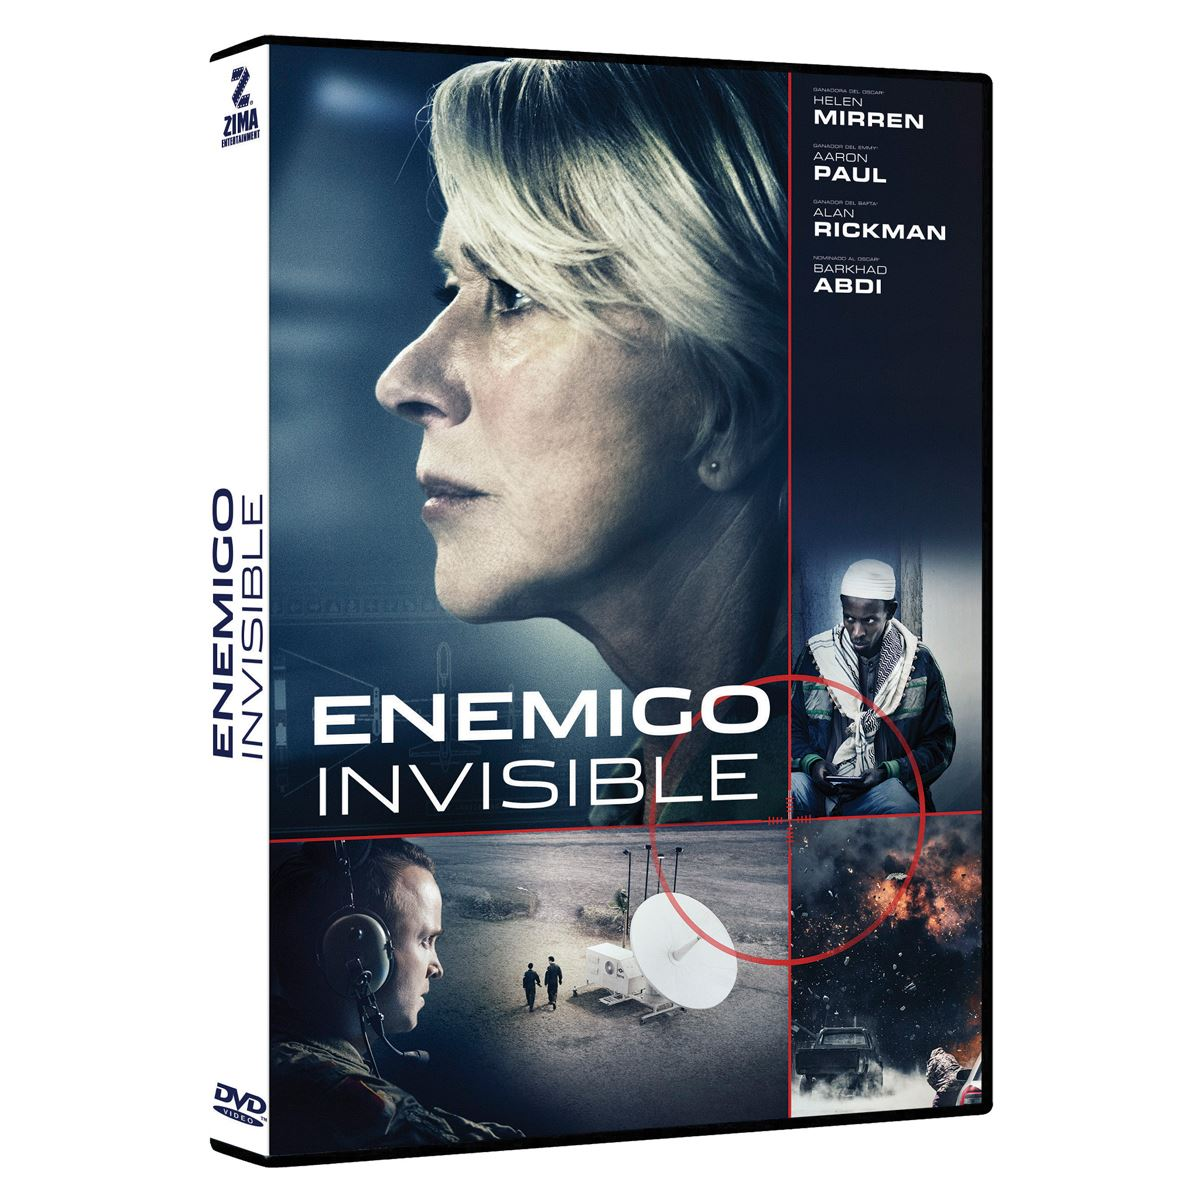 Dvd enemigo invisible  - Sanborns